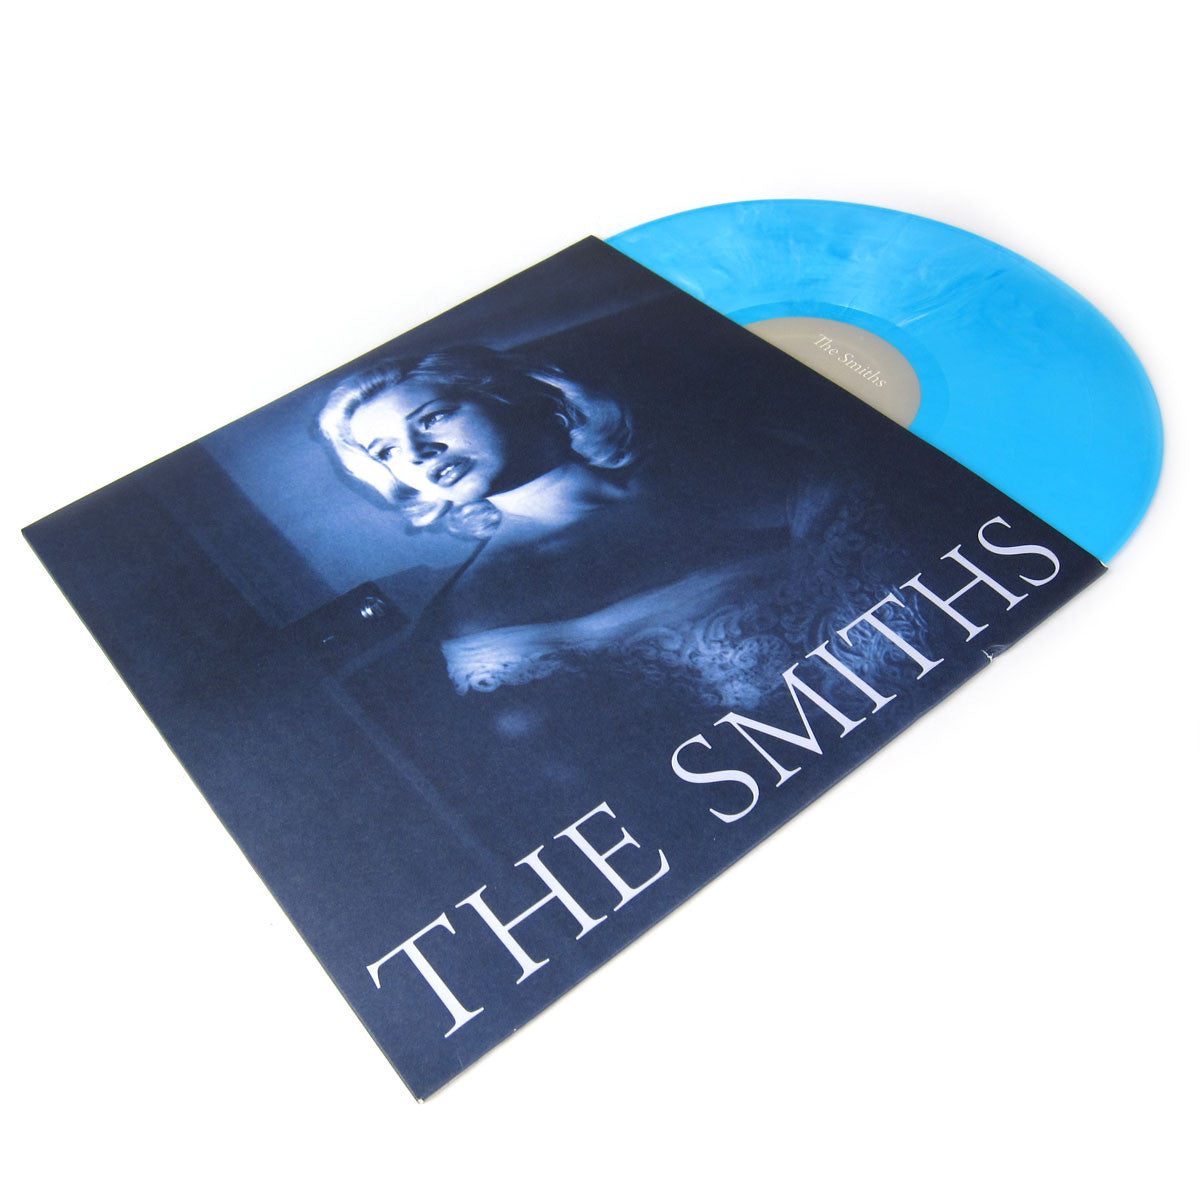 The Smiths: Unreleased Demos & Instrumentals (Blue Vinyl) 2LP